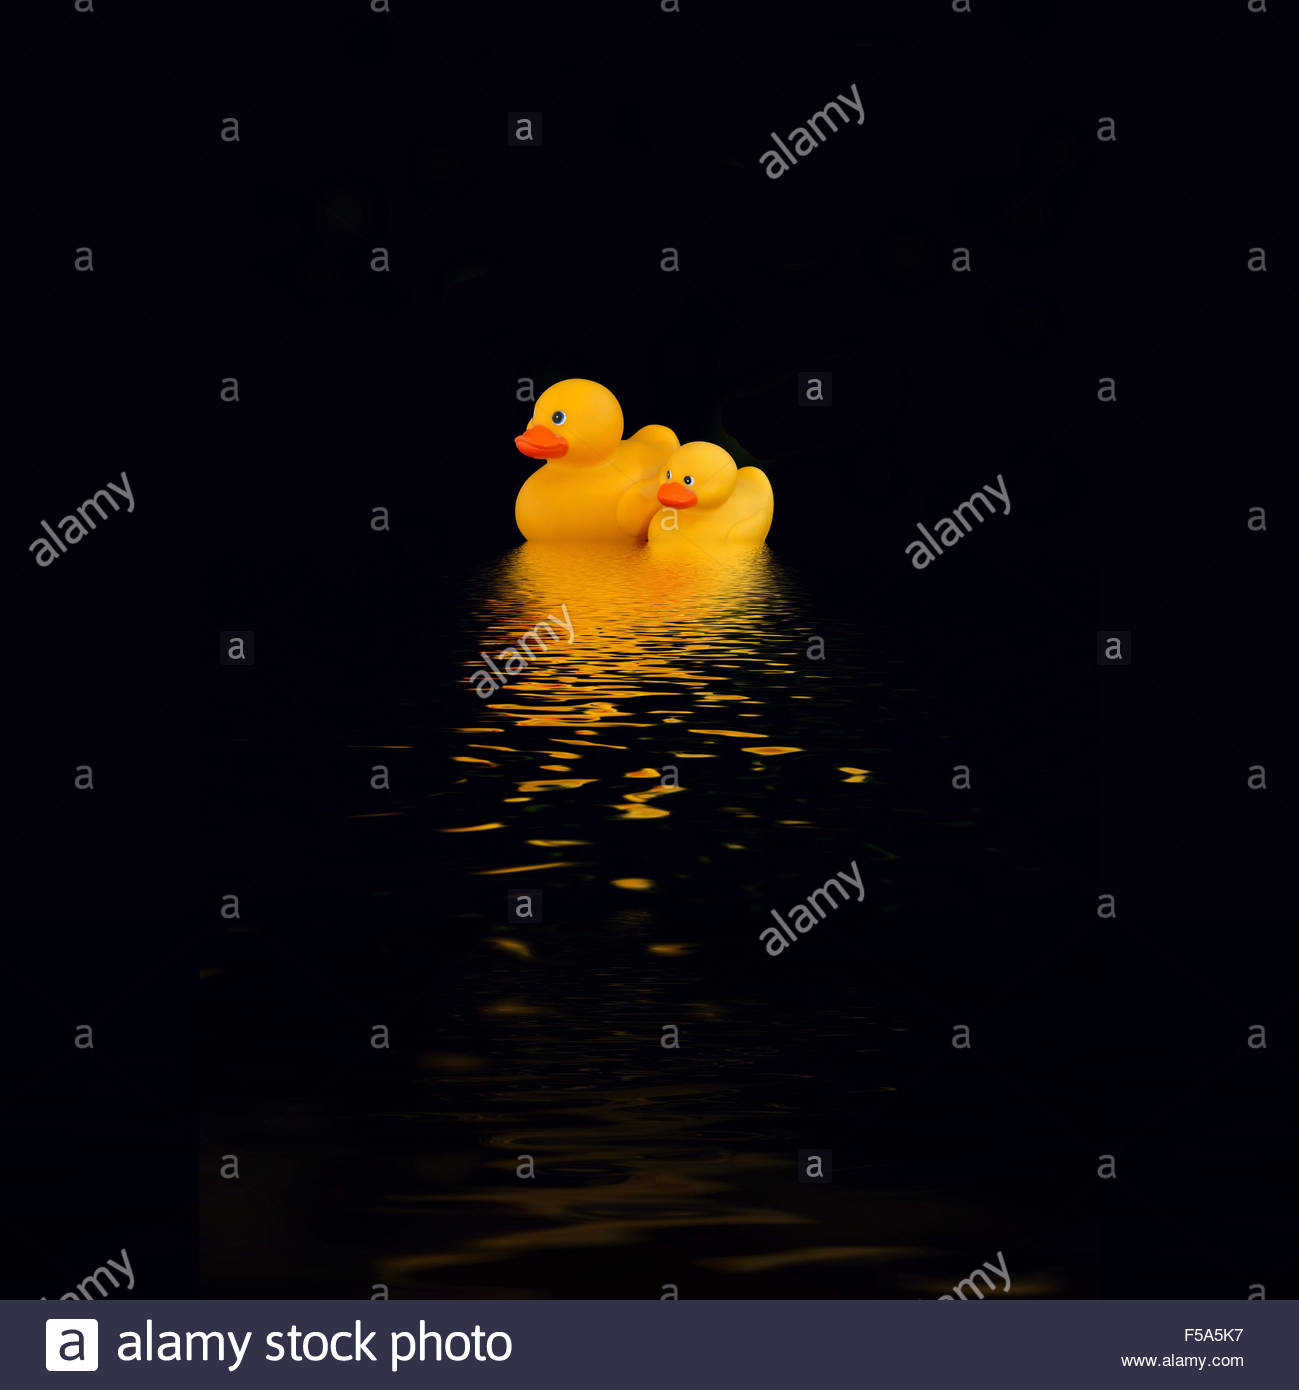 digital-illustration-ducks-that-pass-in-the-night-F5A5K7.jpg